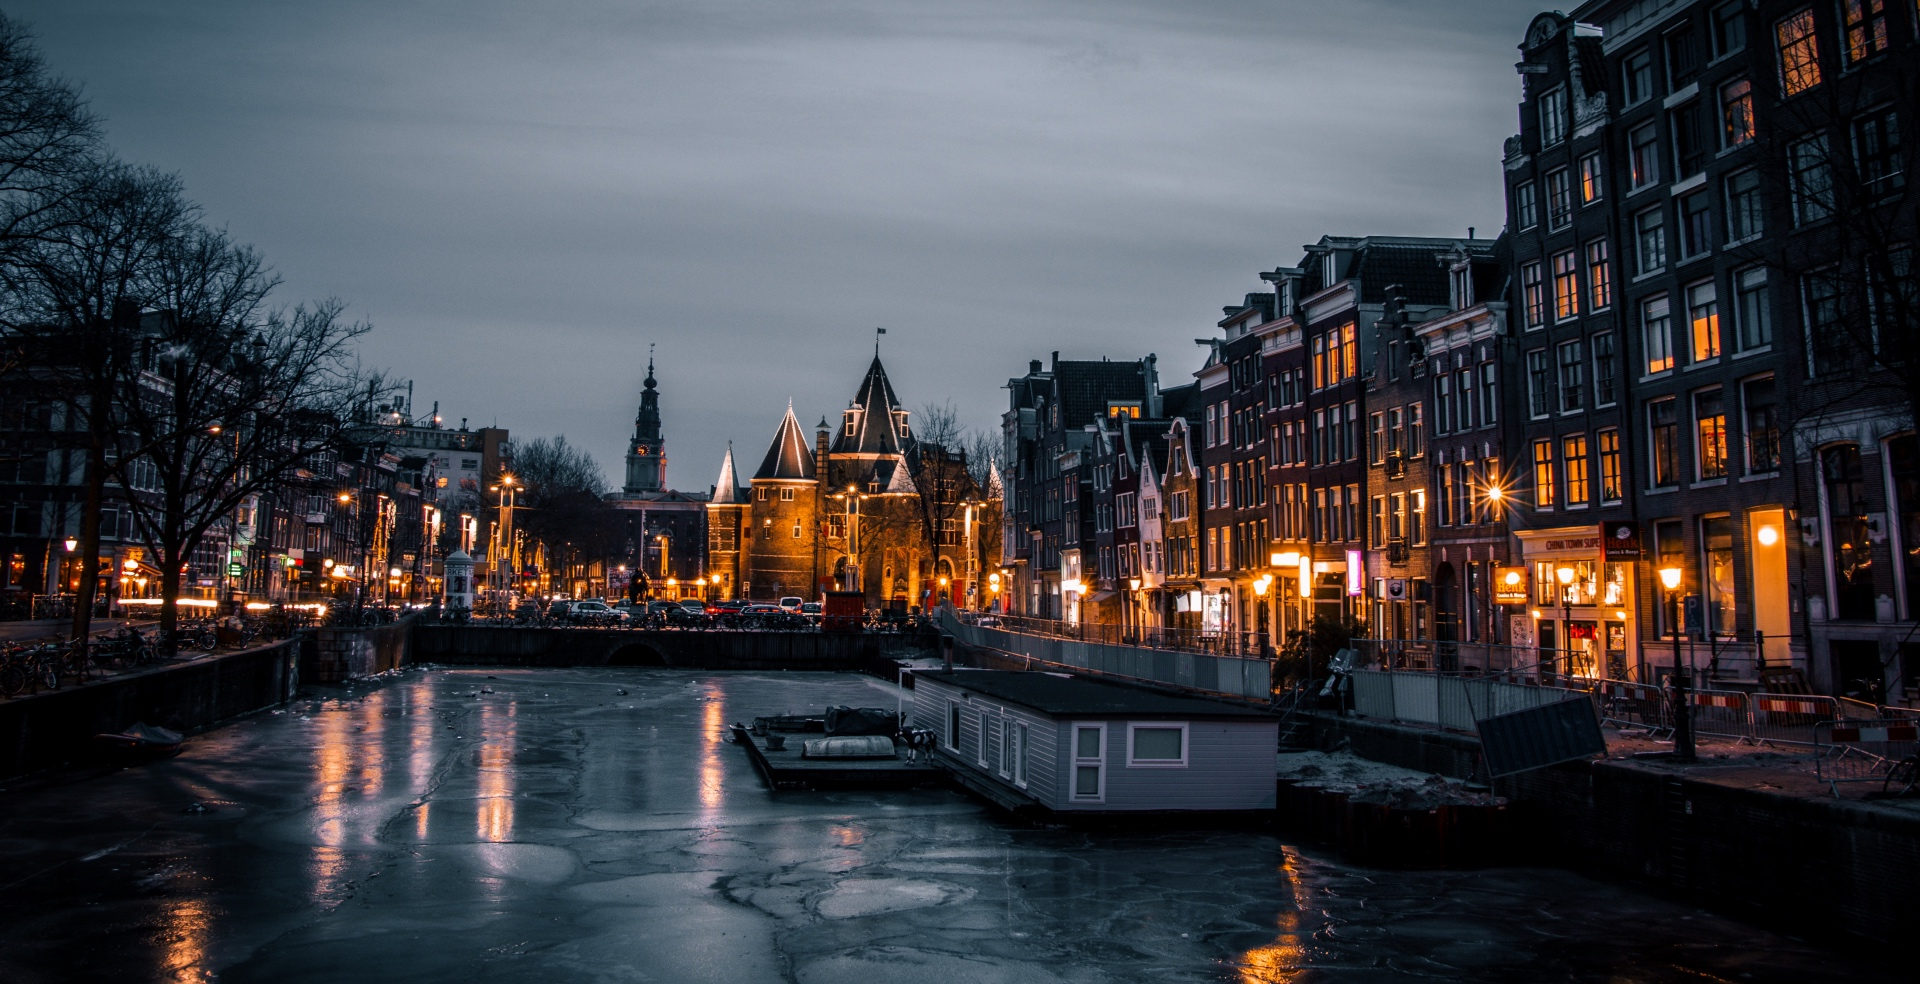 Amsterdam by nigh shows how romantic Amsterdam is